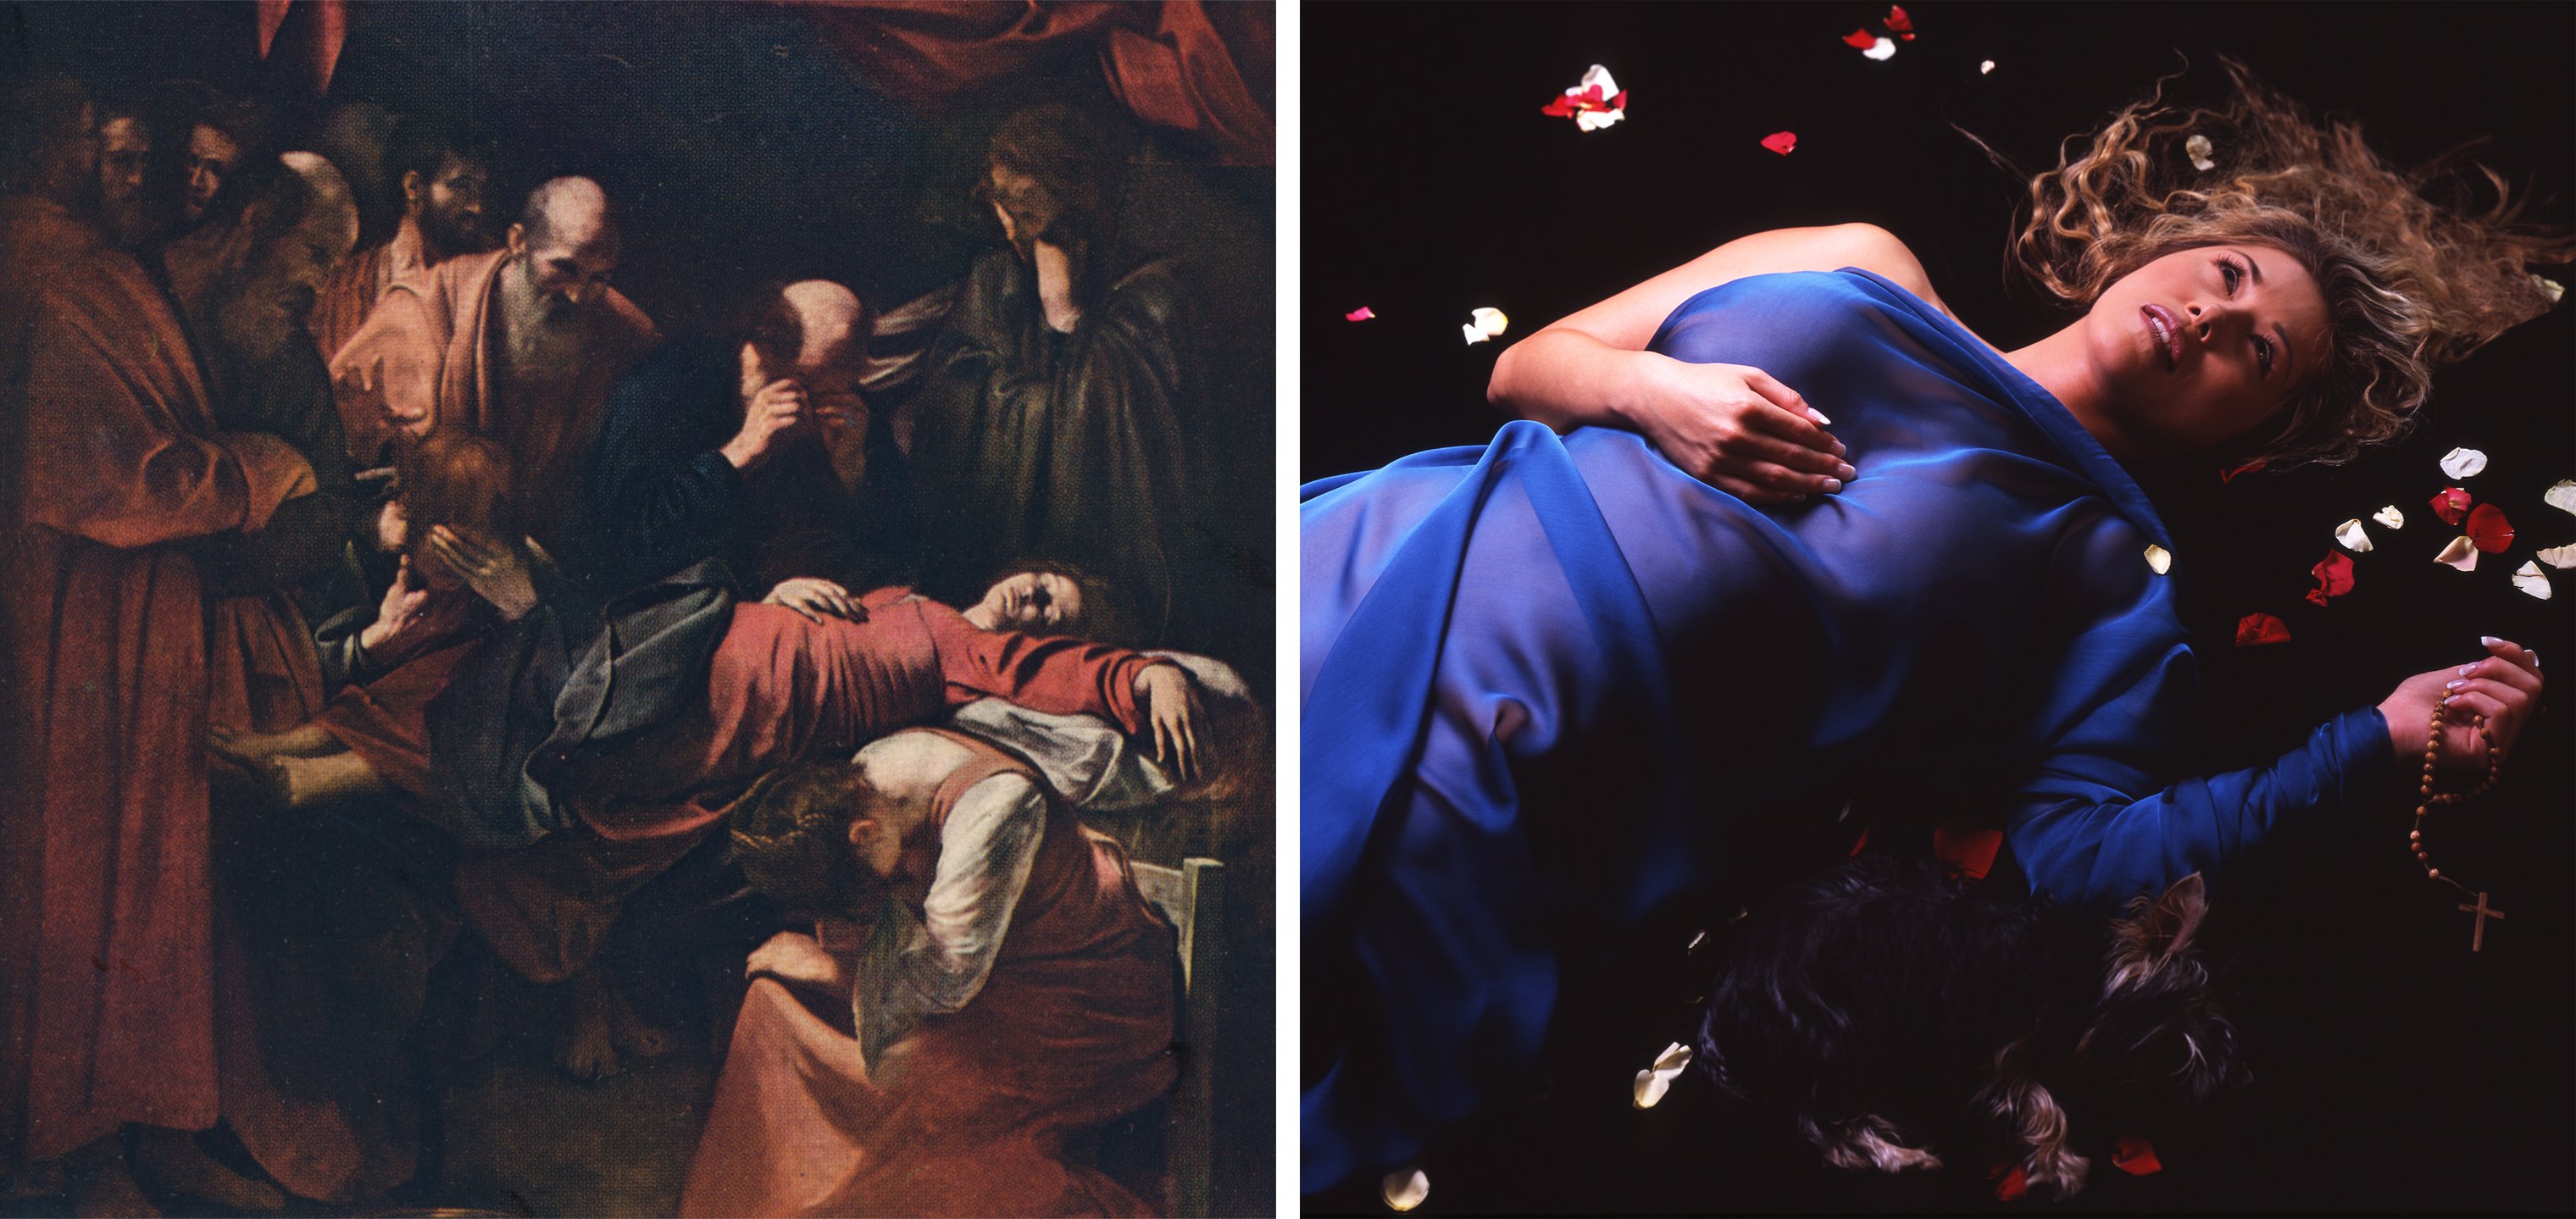 Left: Caravaggio, The Death of the Virgin, commissioned 1602 (The Print Collector/Getty Images); Right: Nika Nesgoda, Mors de Virgine, 2002